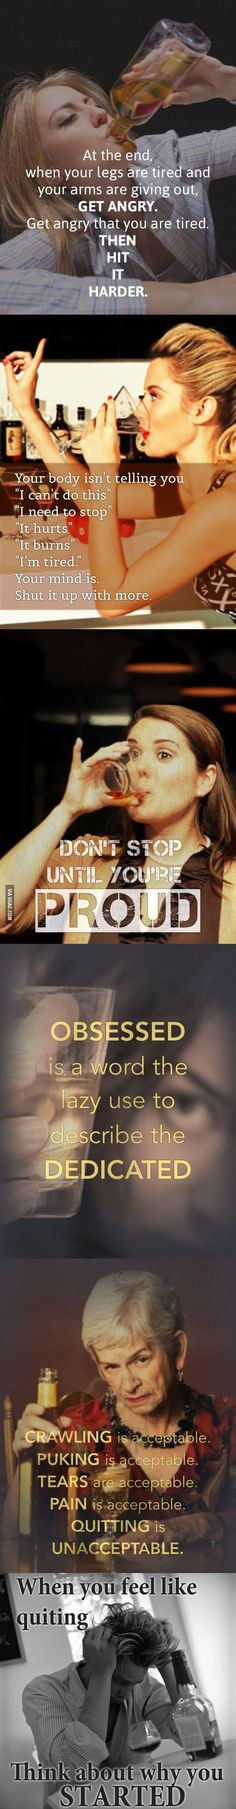 Putting fitness quotes in pictures of people getting drunk makes things a lot more interesting.